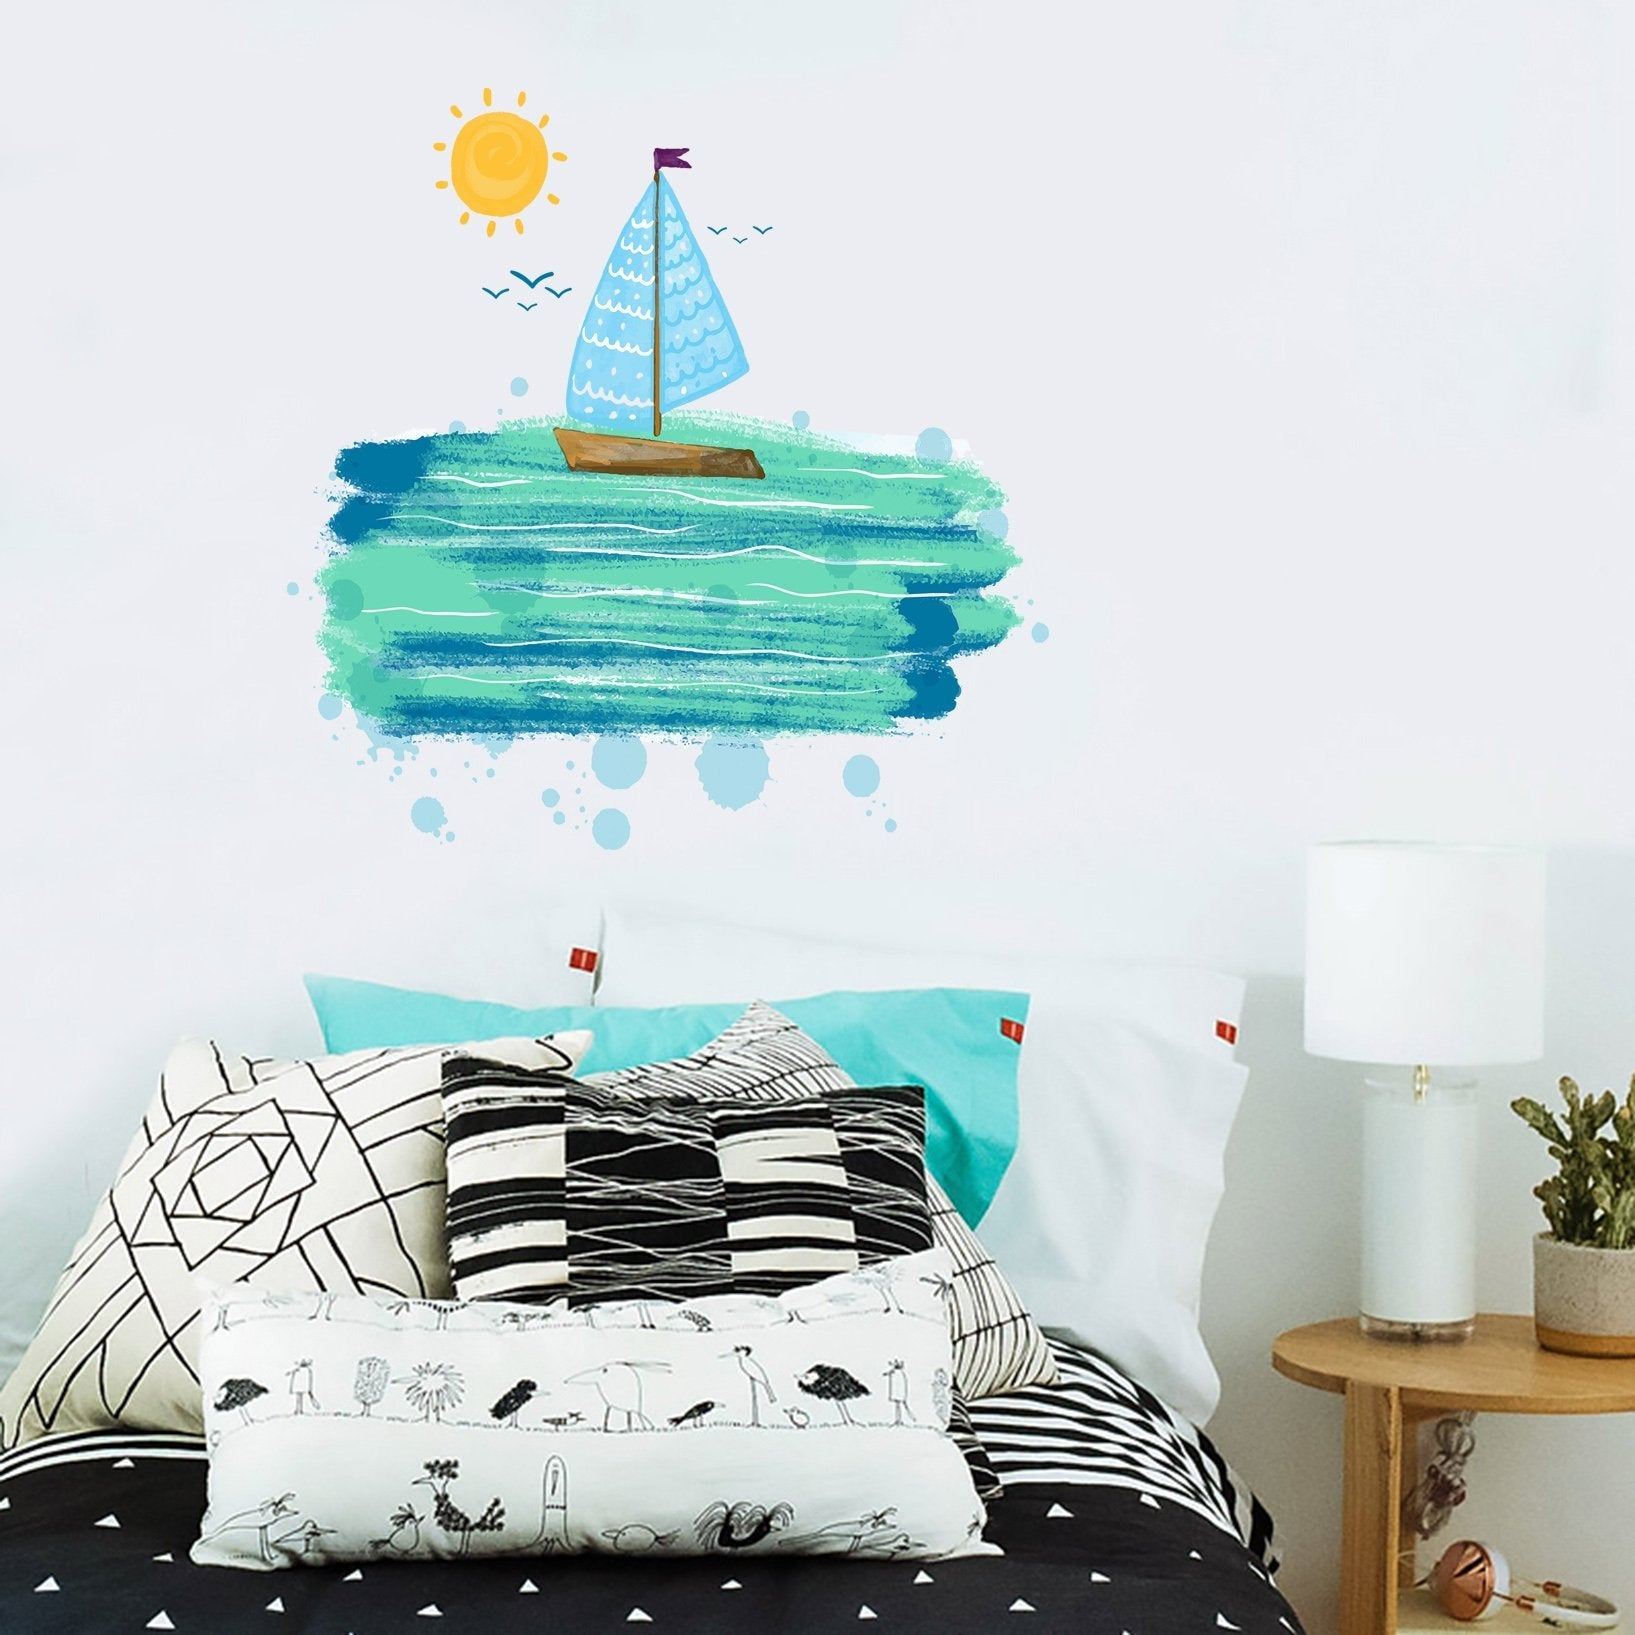 3D Graffiti Sun Boat 162 Wall Stickers Wallpaper AJ Wallpaper